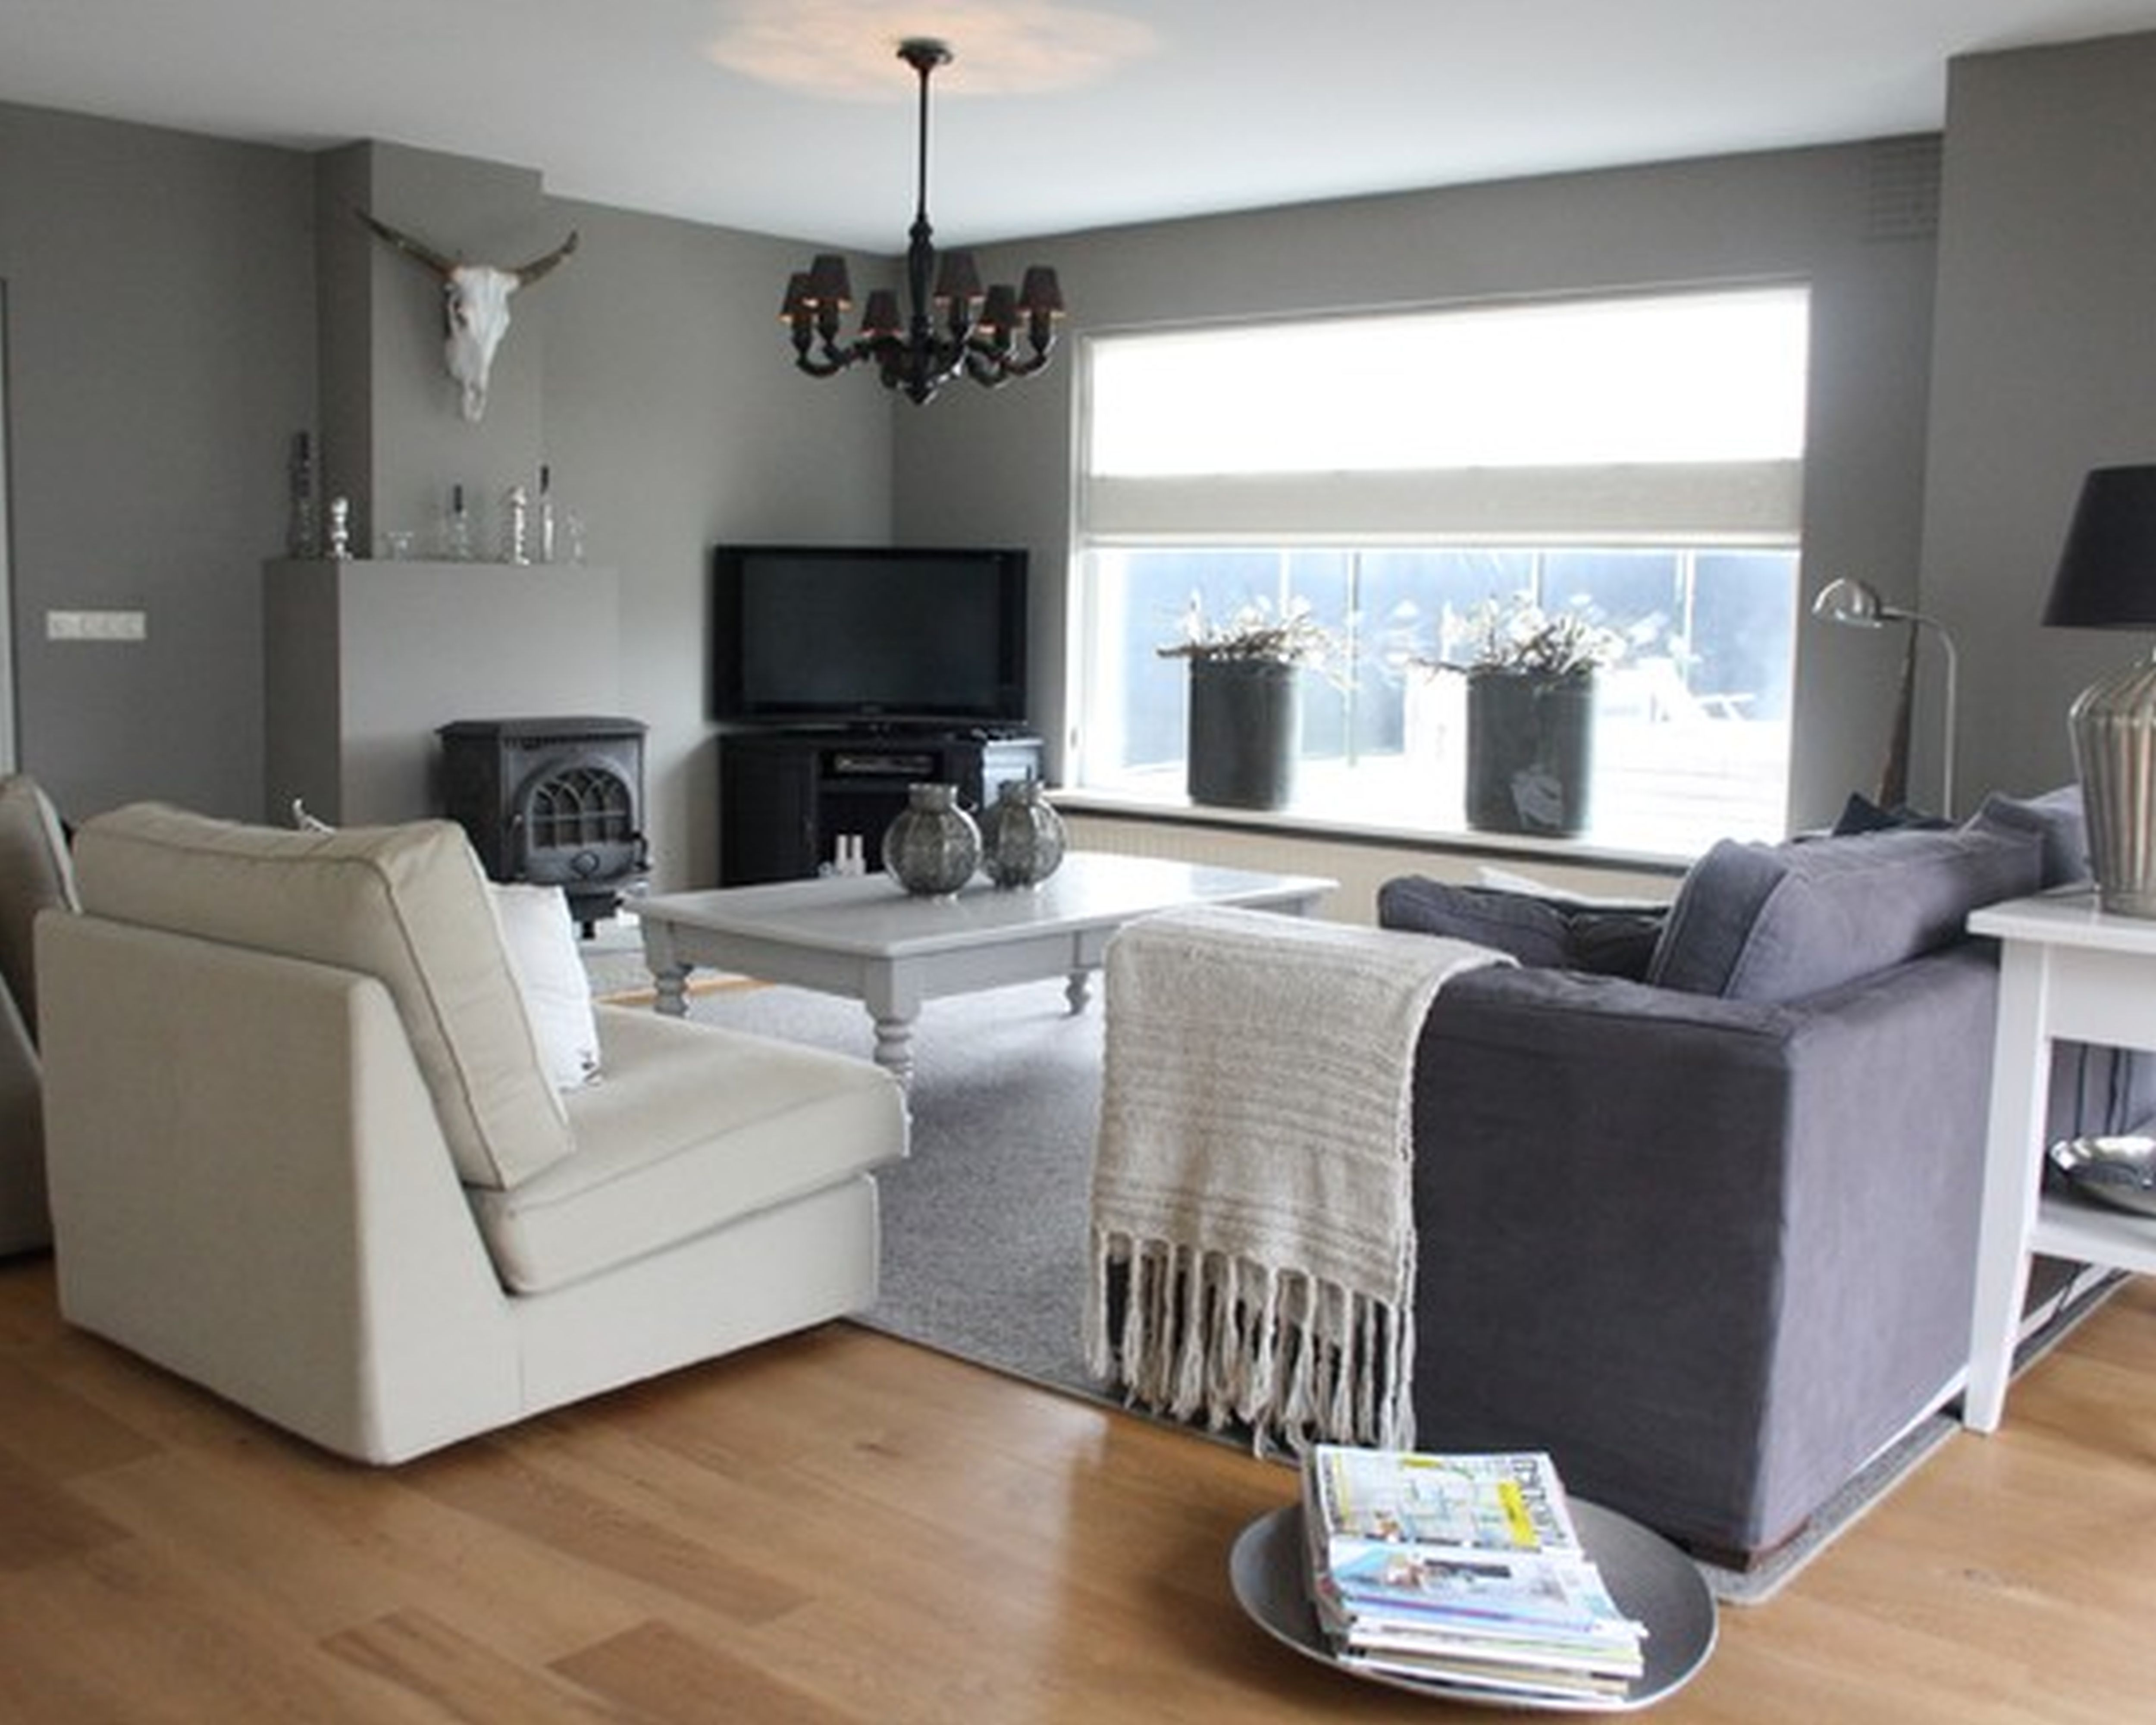 living room color ideas grey nice warm colours for ways to decorate rooms dream home impressive elegant best white paint zooyer